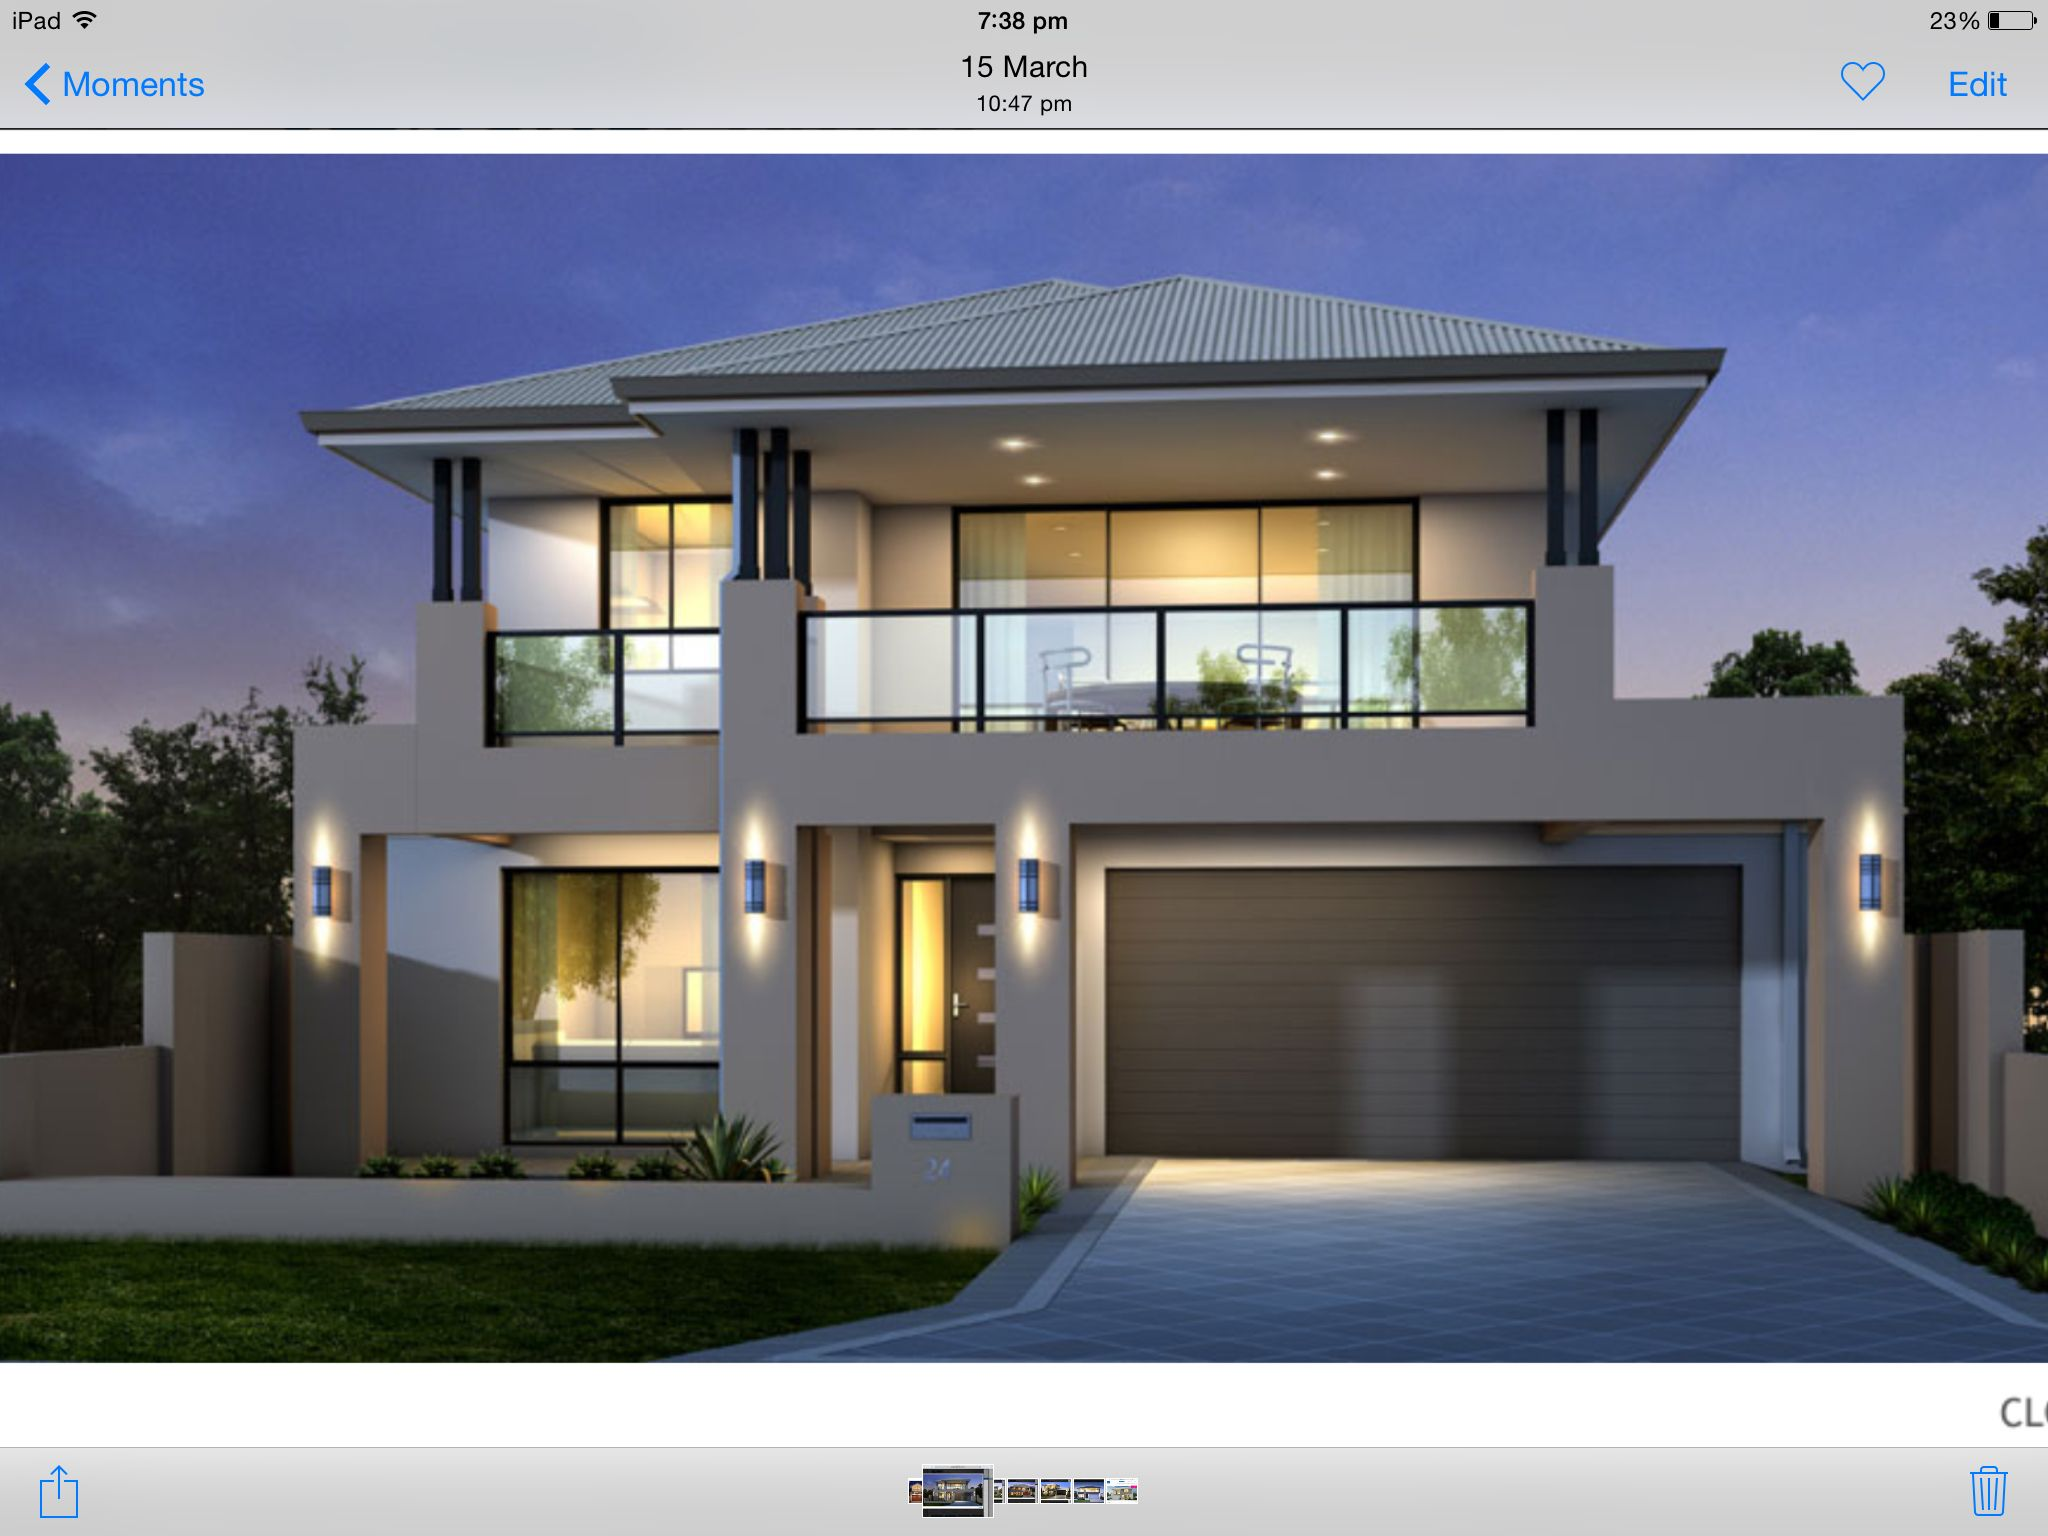 Two Storey House Facade Grey And Black Balcony Over Garage Glass Rail Modern Sleek Two Story House Design Facade House 2 Storey House Design